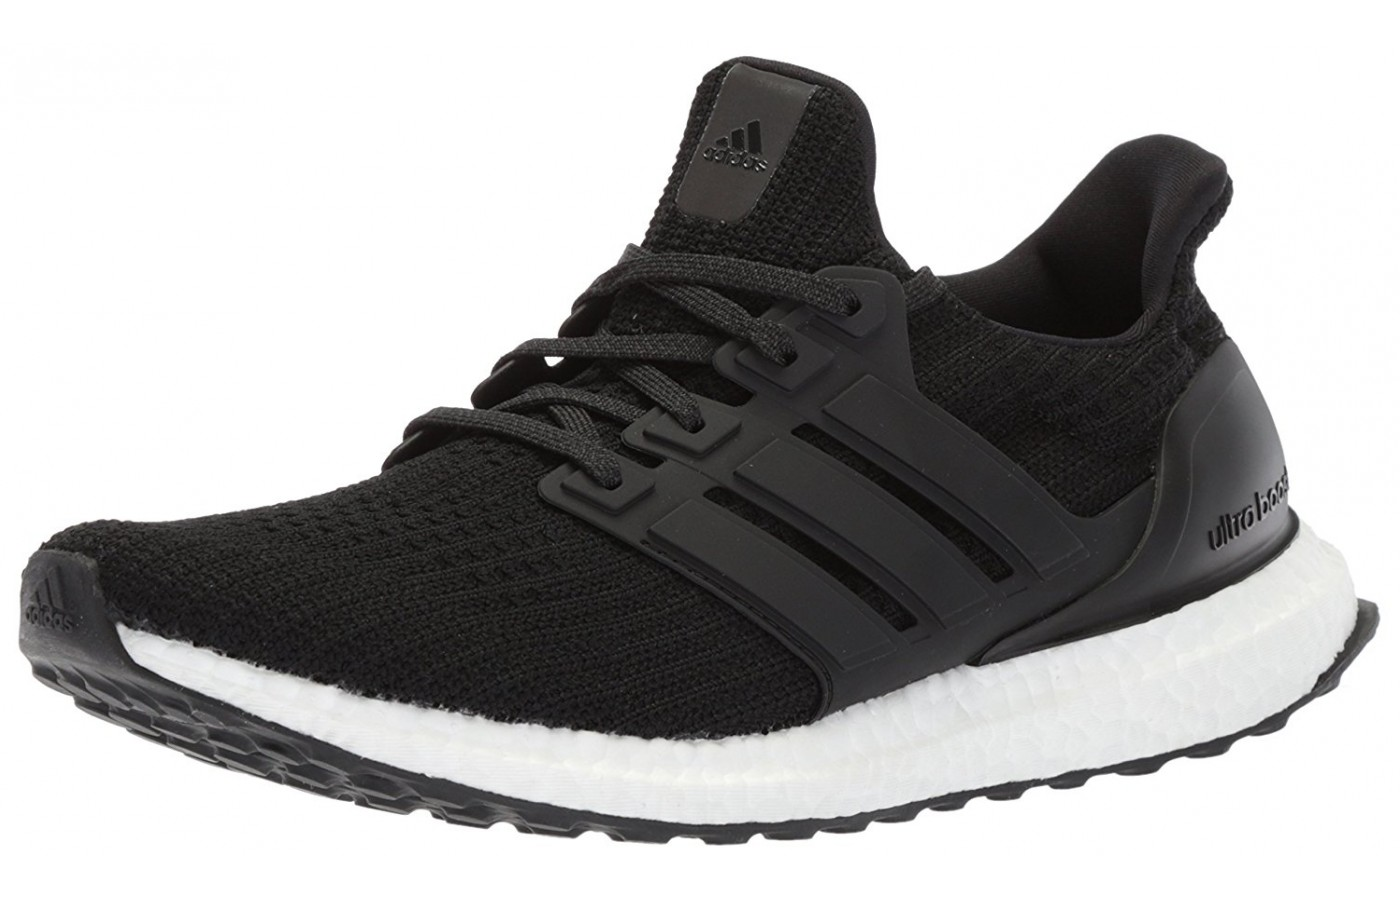 website for discount cheap sale lowest discount Adidas Ultraboost 3.0 Reviewed & Tested for Performance